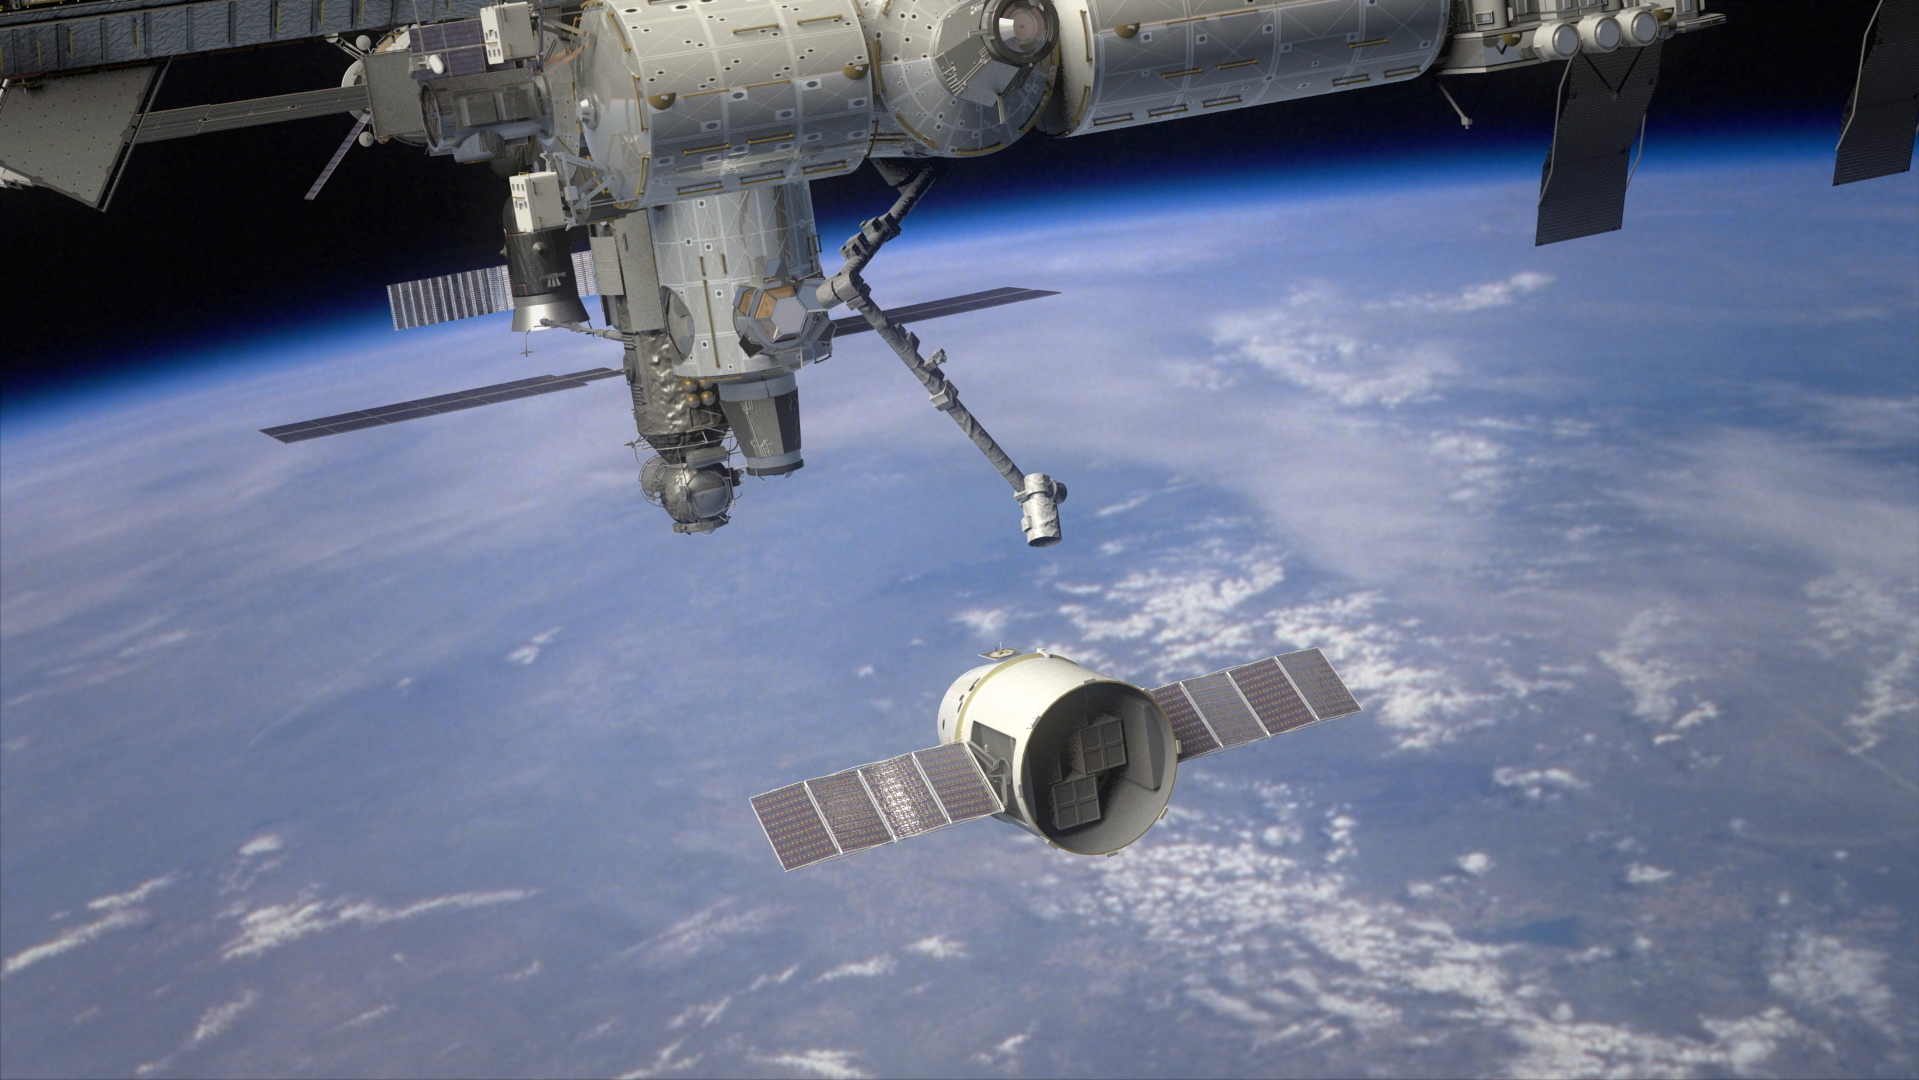 spacex dragon docking - photo #5